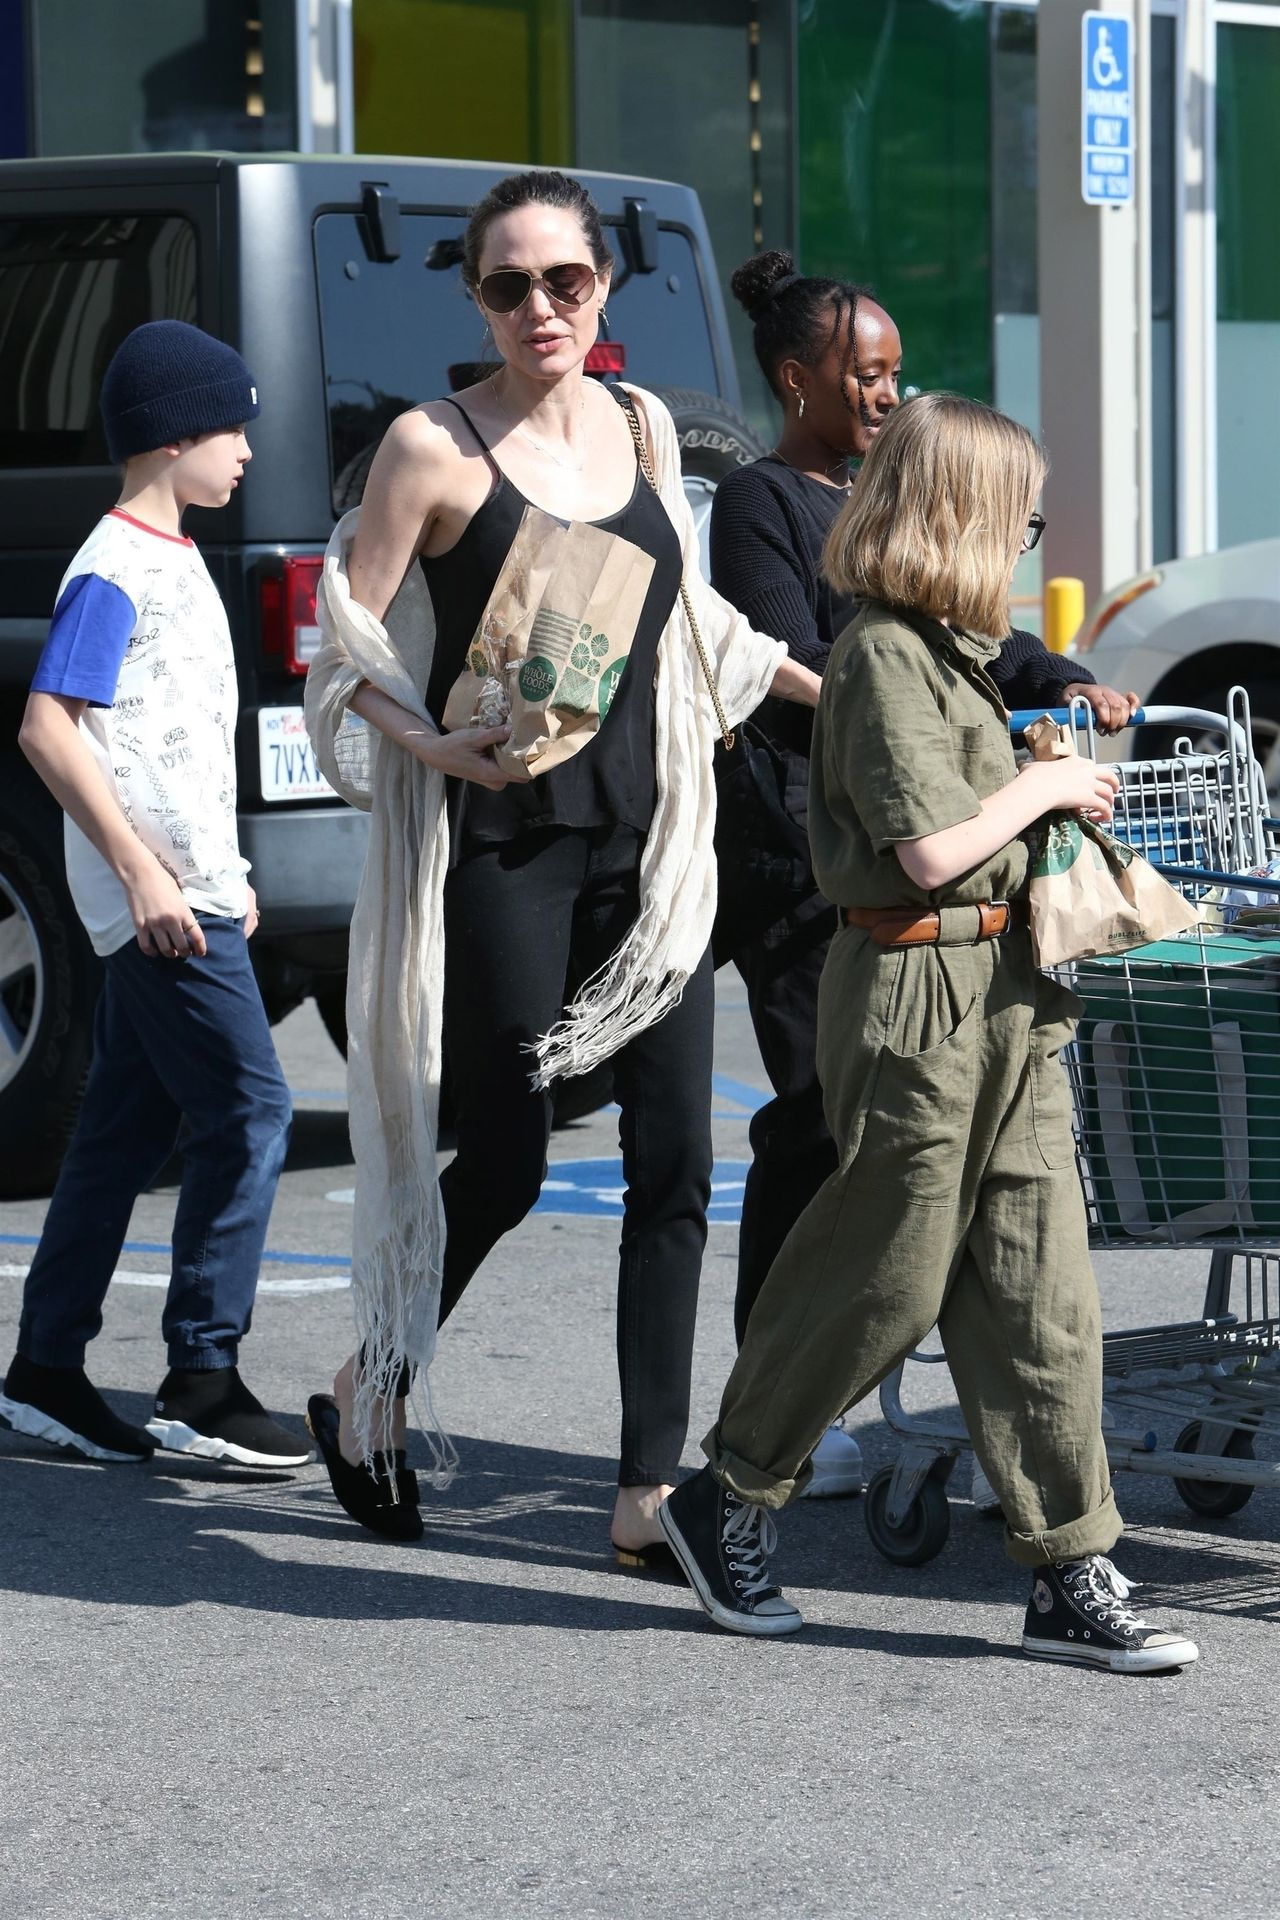 *EXCLUSIVE* Angelina Jolie spends Mother's Day grocery shopping with her kids Angelina Jolie, Zahara Jolie-Pitt, Vivienne Jolie-Pitt, Knox Jolie-Pitt